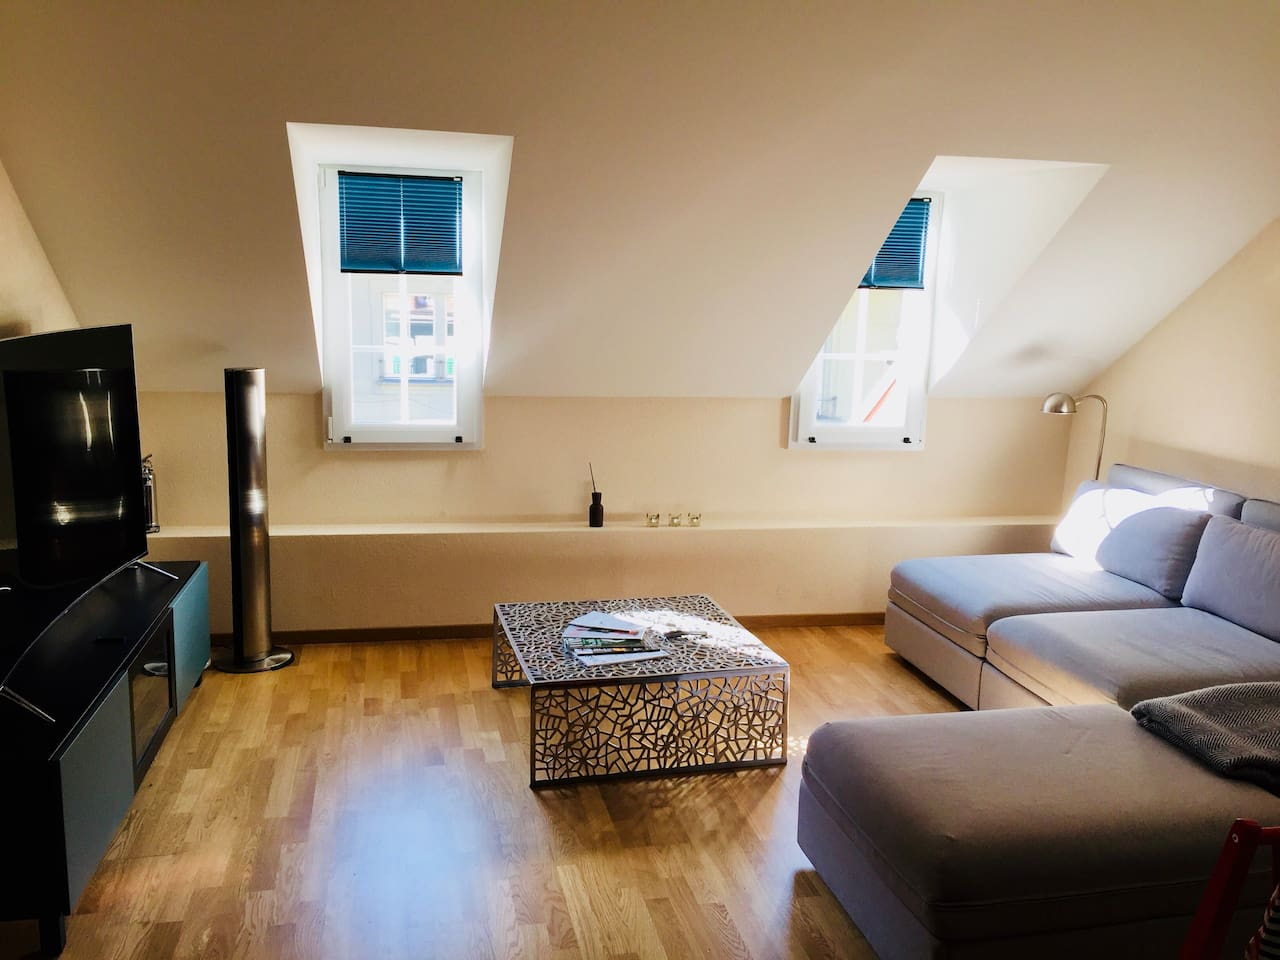 Living room area (the sofa consists of 3 sofa-bed elements of 80x200cm each)